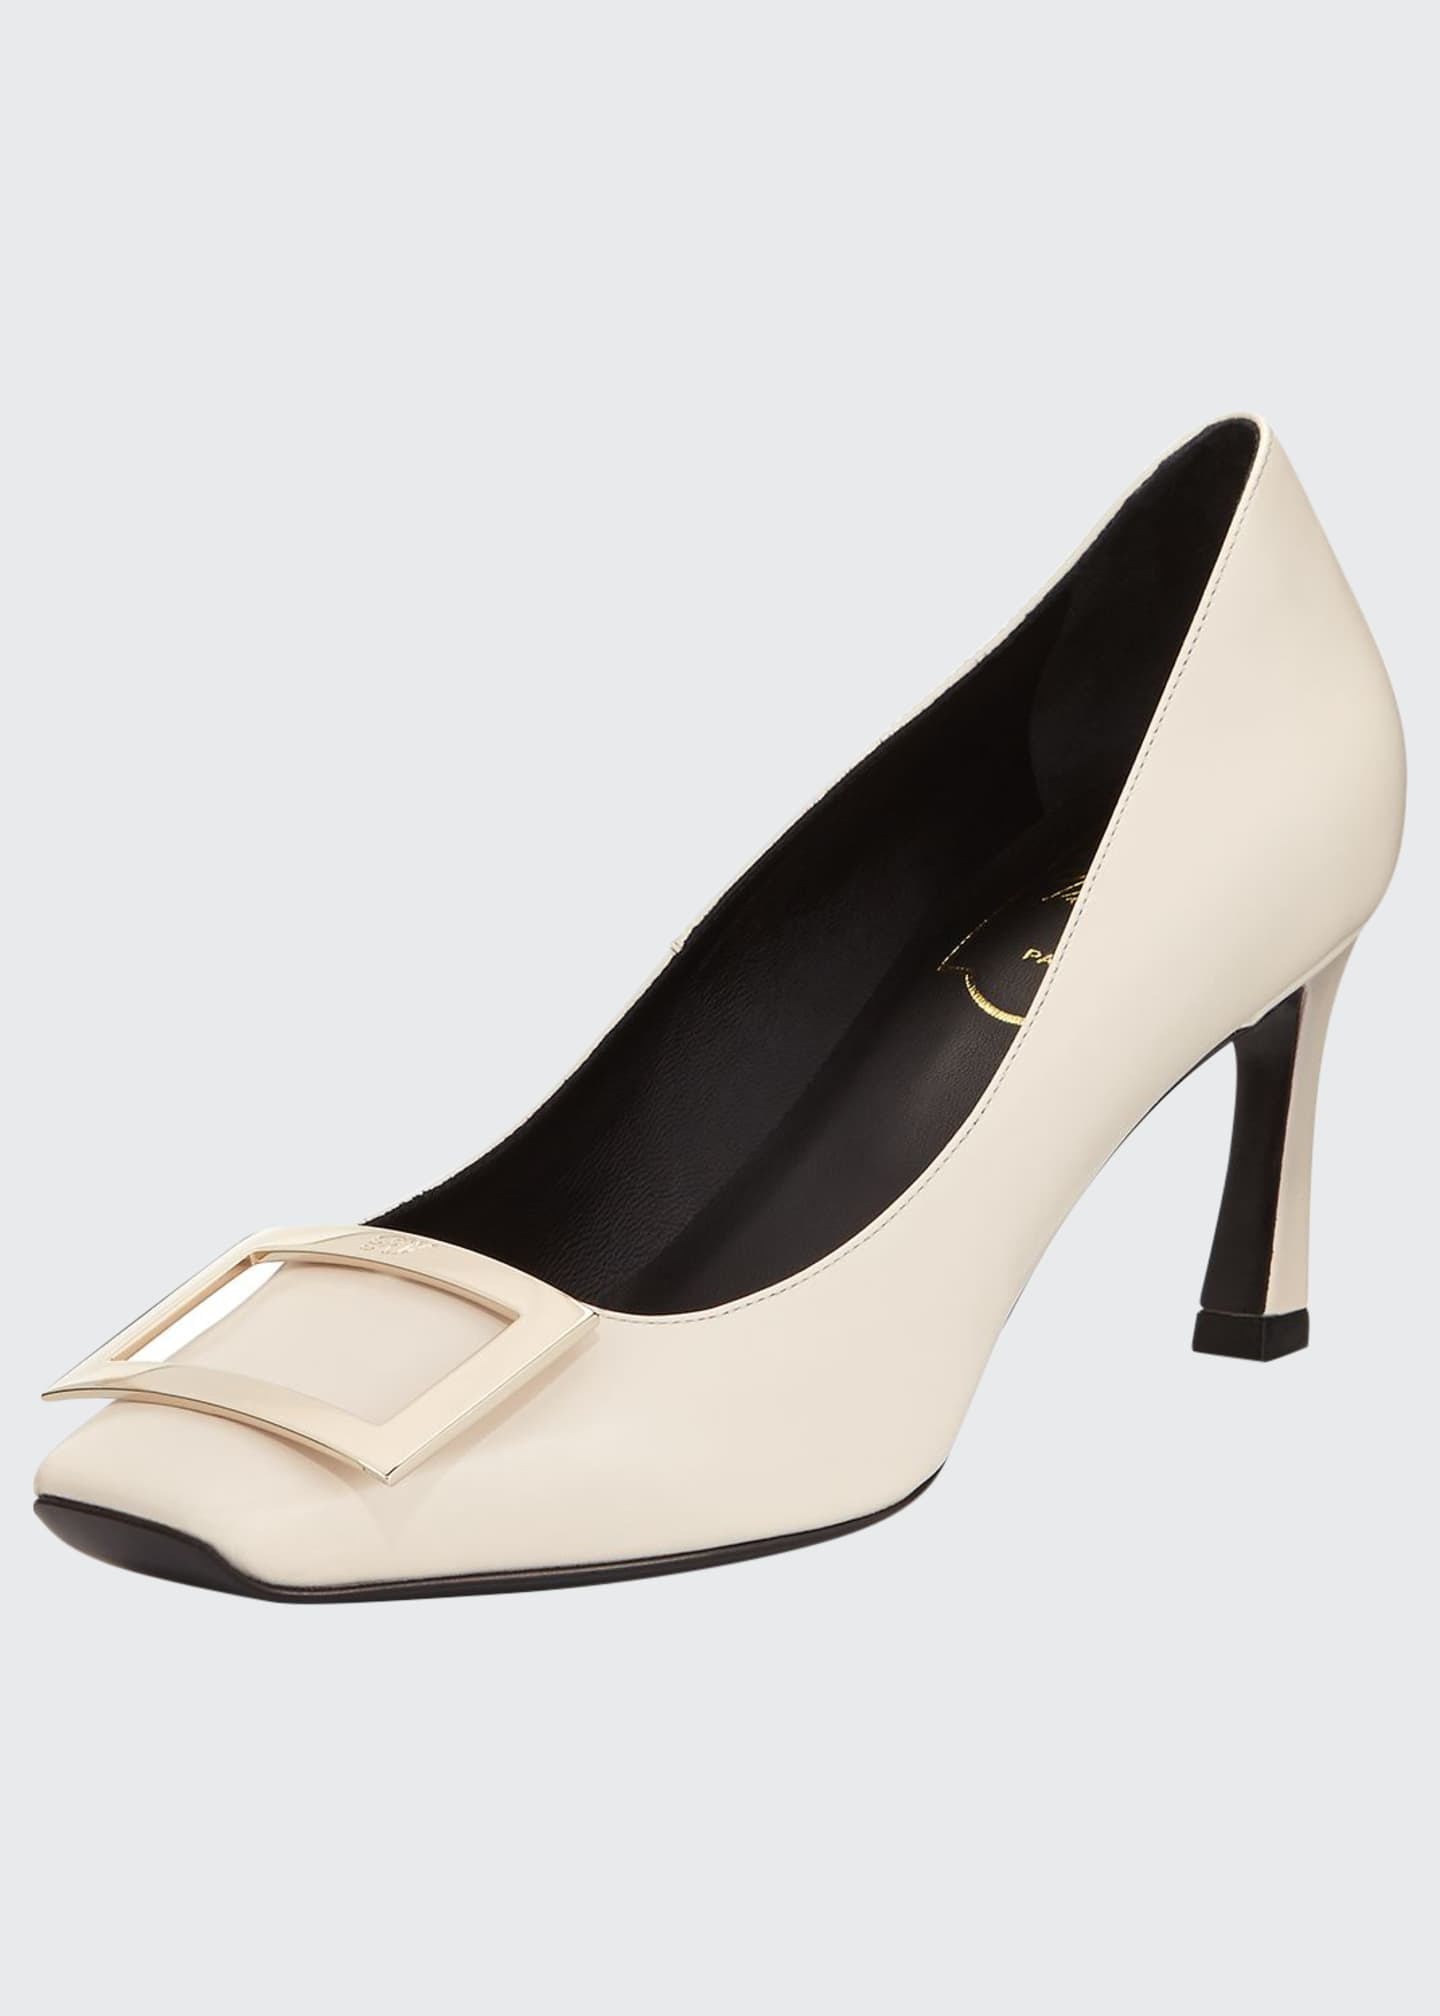 Image 1 of 3: Belle Vivier Trompette Leather 70mm Pumps, Off White